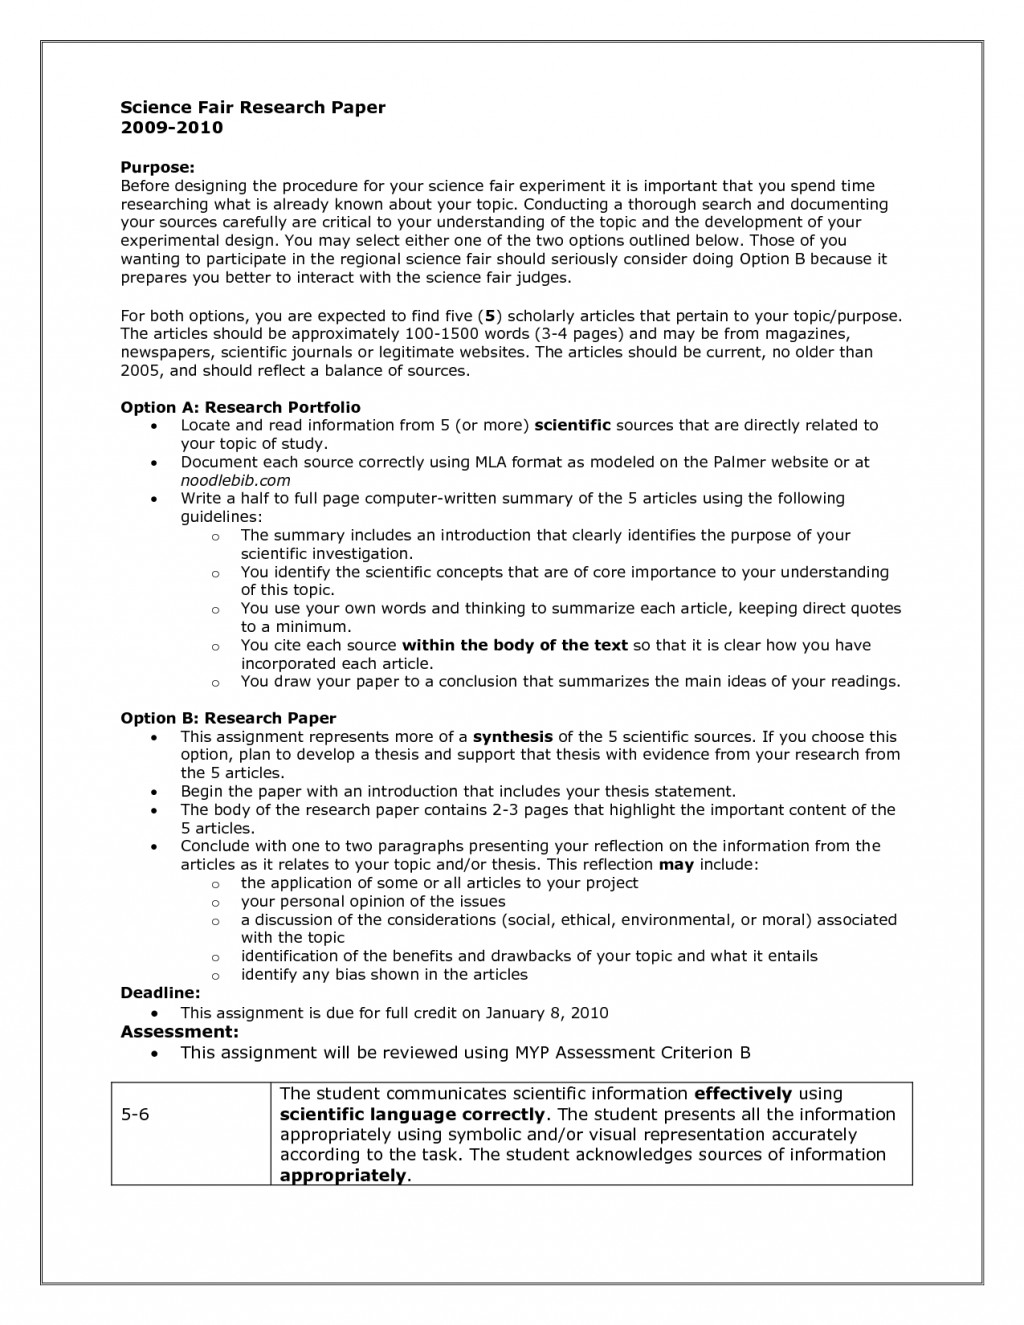 025 Best Photos Of Science Procedure Template Fair Essay Example L Research Paper Fearsome Websites Top 10 Free Large